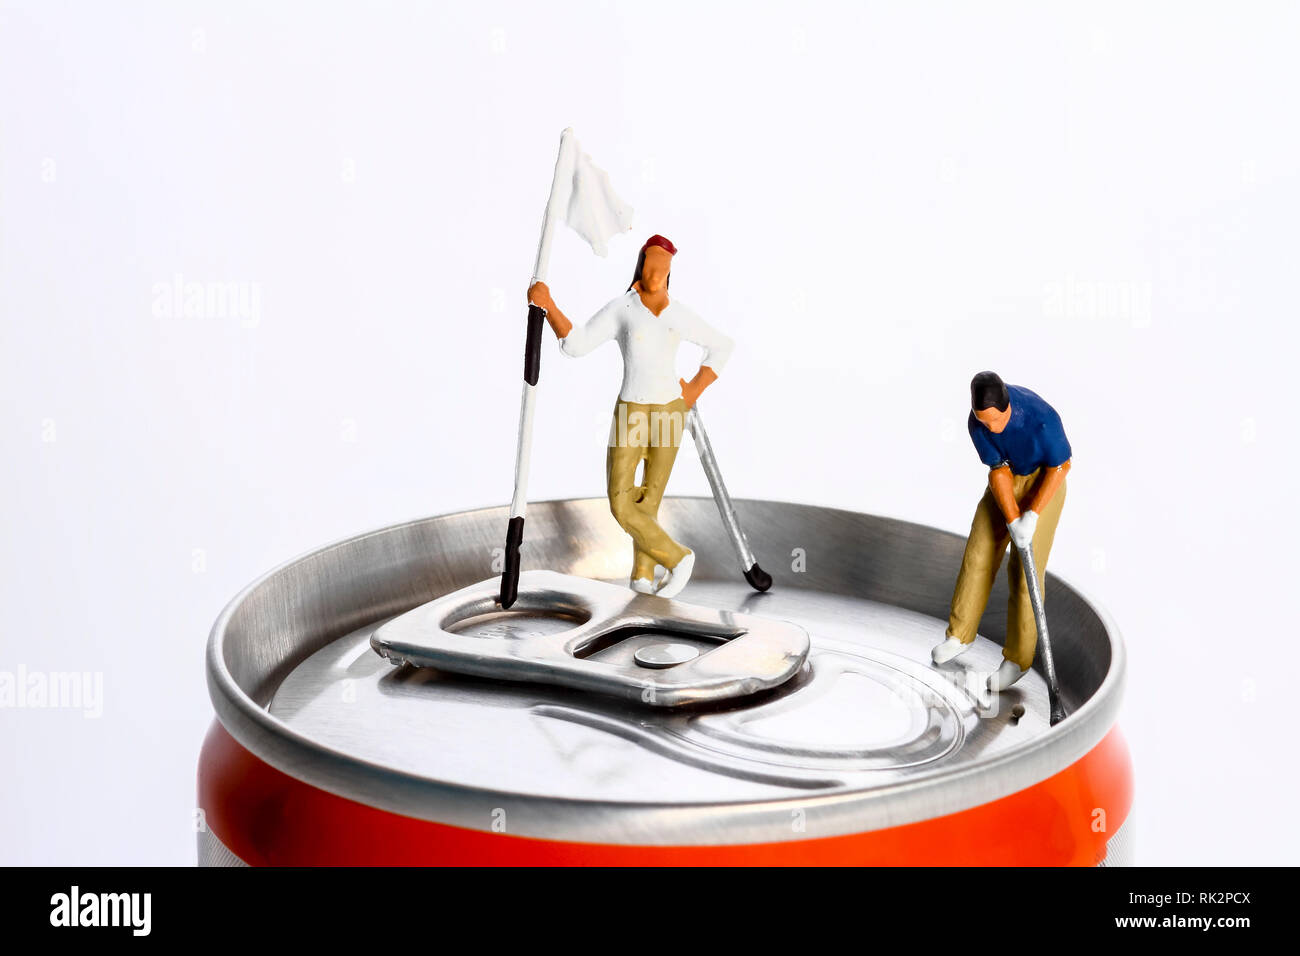 Conceptual diorama image of a miniture figure couple playing golf on a drinks can Stock Photo